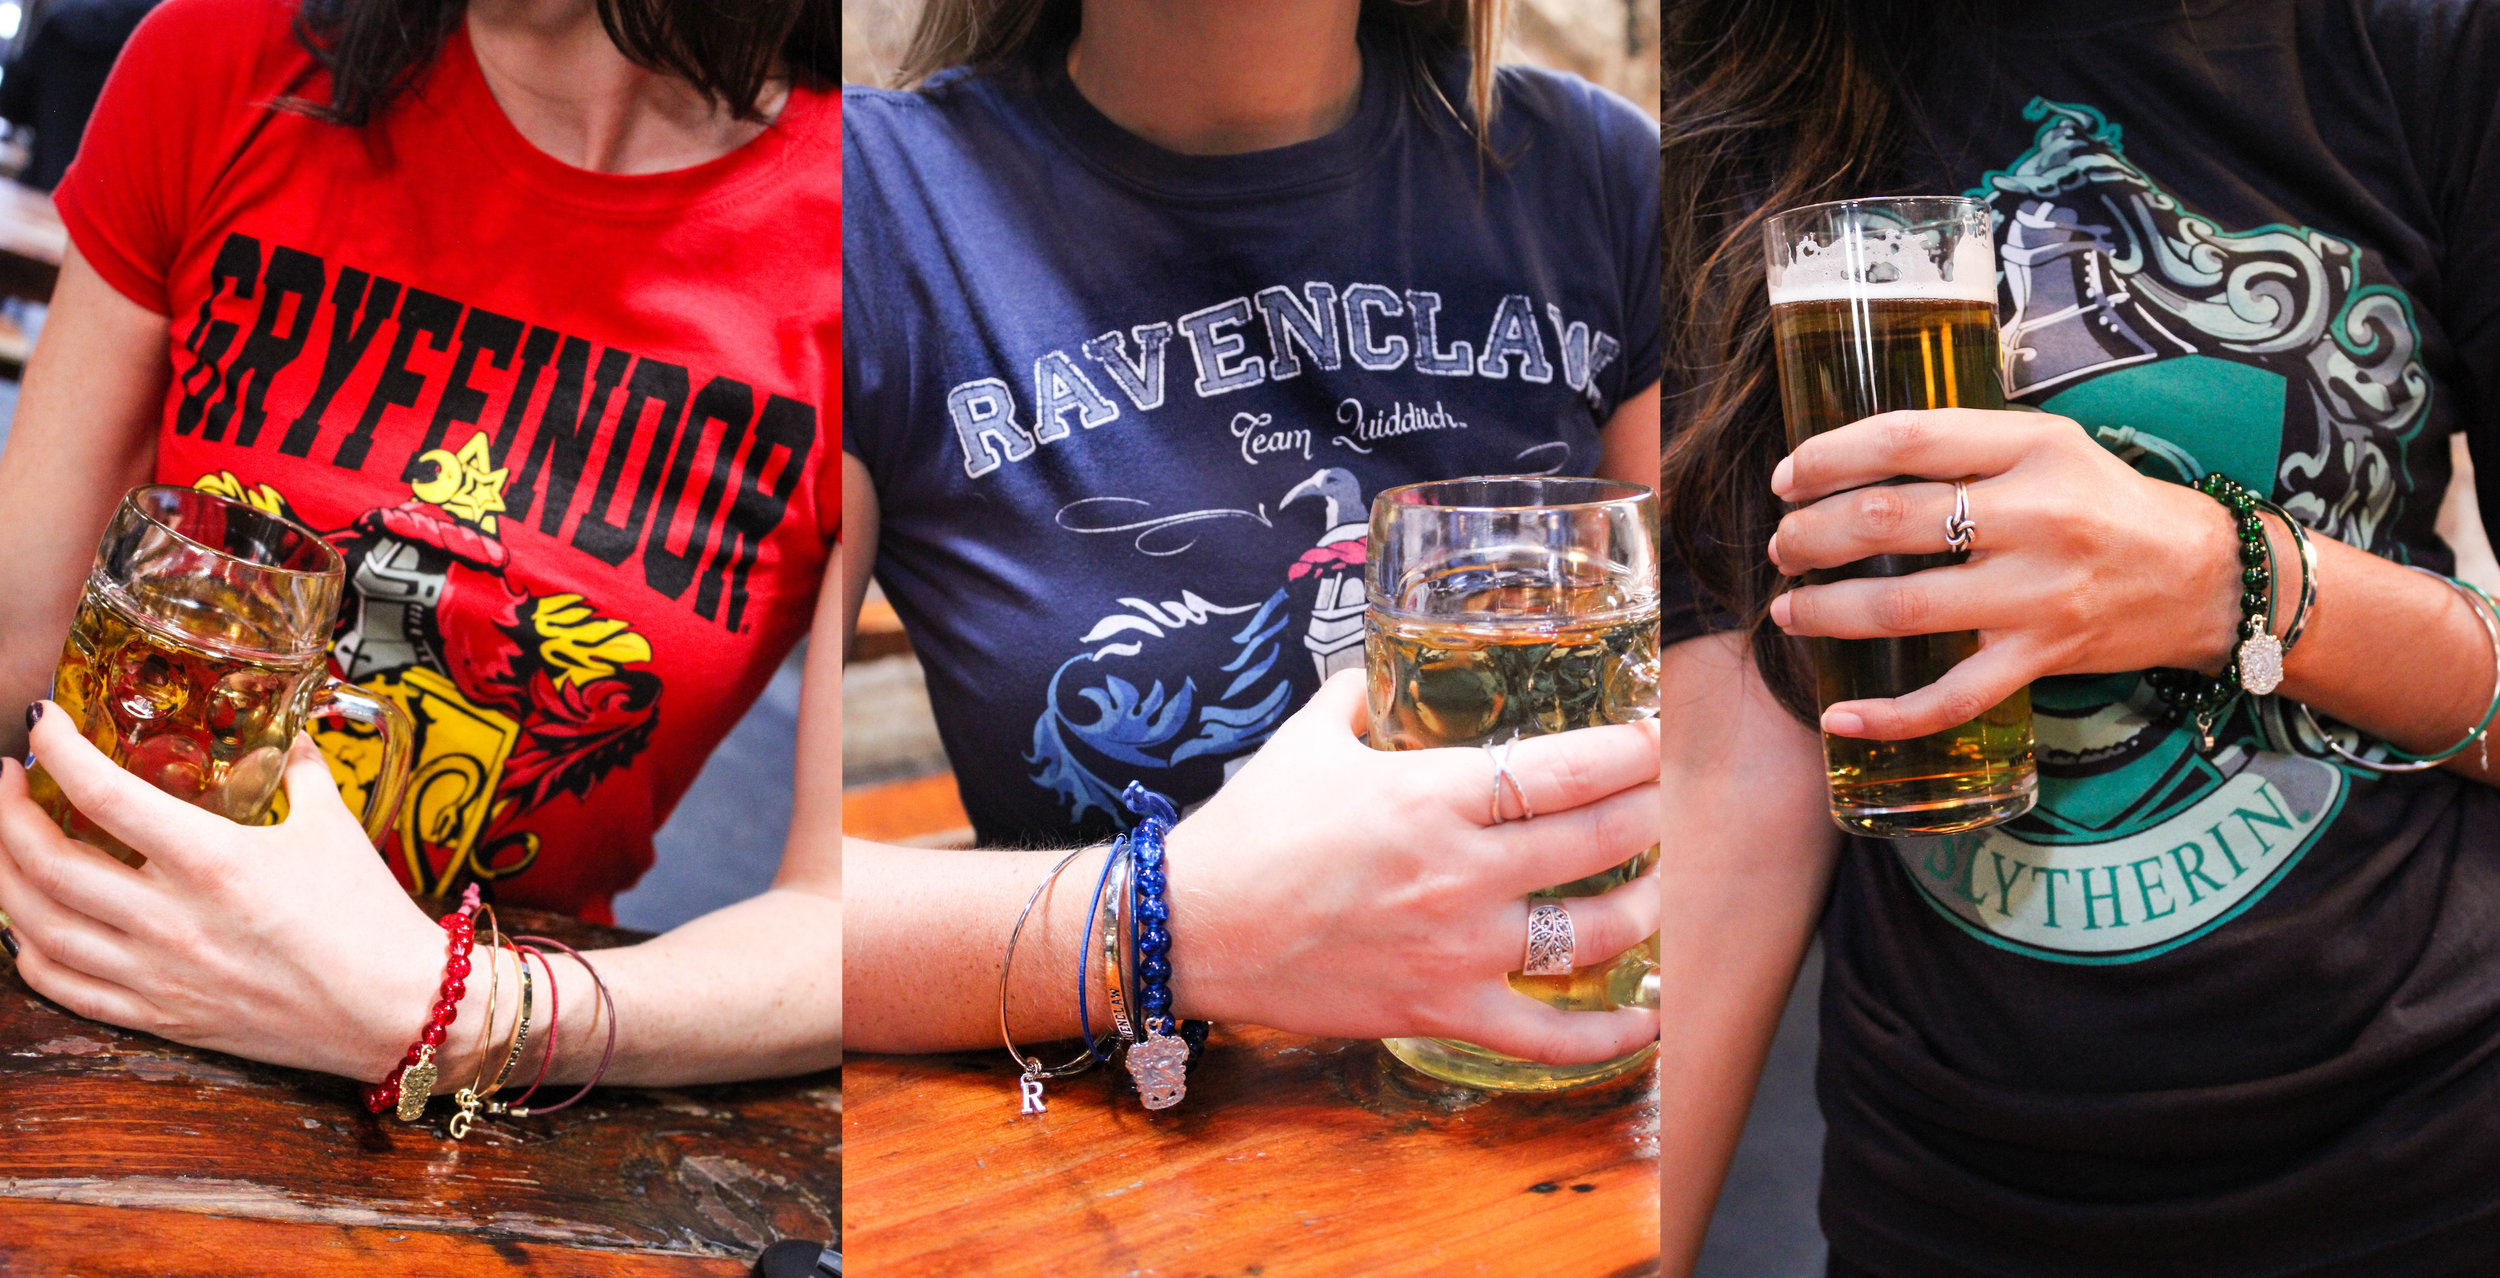 Our outfits from left to right:  Gryffindor red t-shirt  and  charm bracelet ,  Ravenclaw blue t-shirt  and  charm bracelet , and  Slytherin black t-shirt  and  charm bracelet.